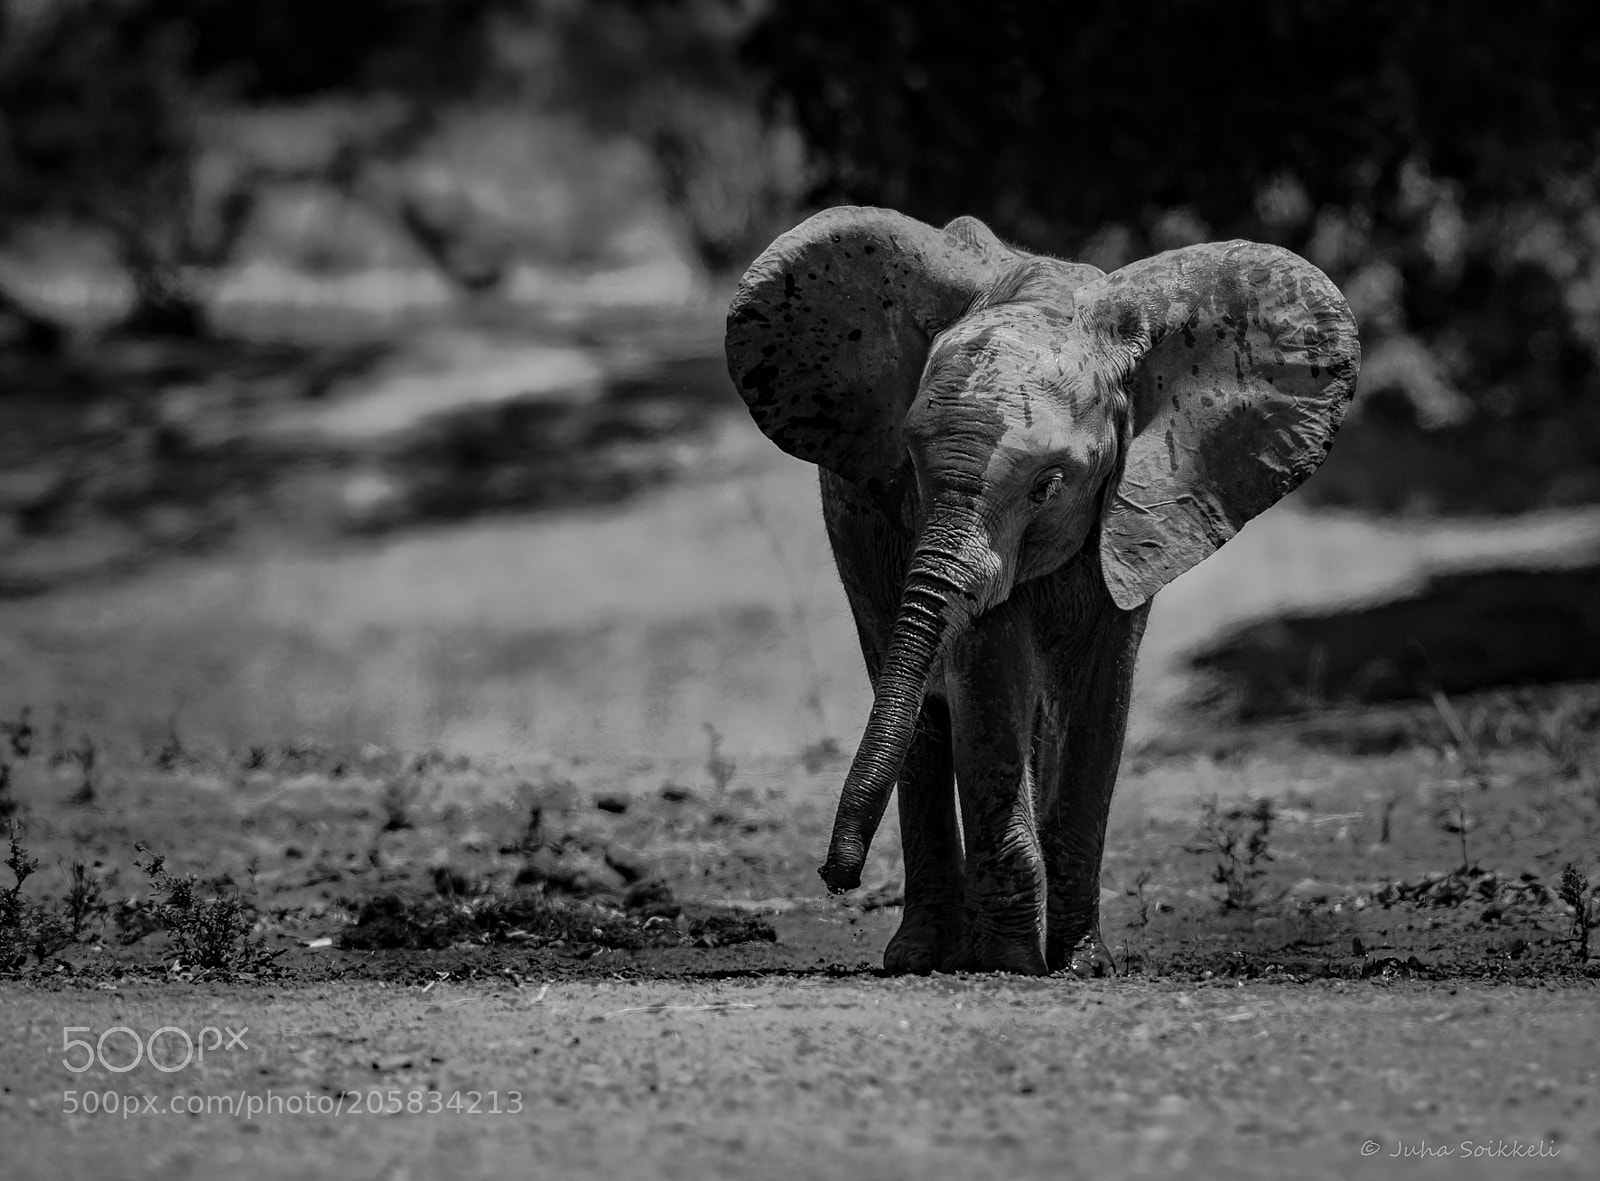 Baby elephant Zambia, Nikon D810, AF-S VR Nikkor 300mm f/2.8G IF-ED